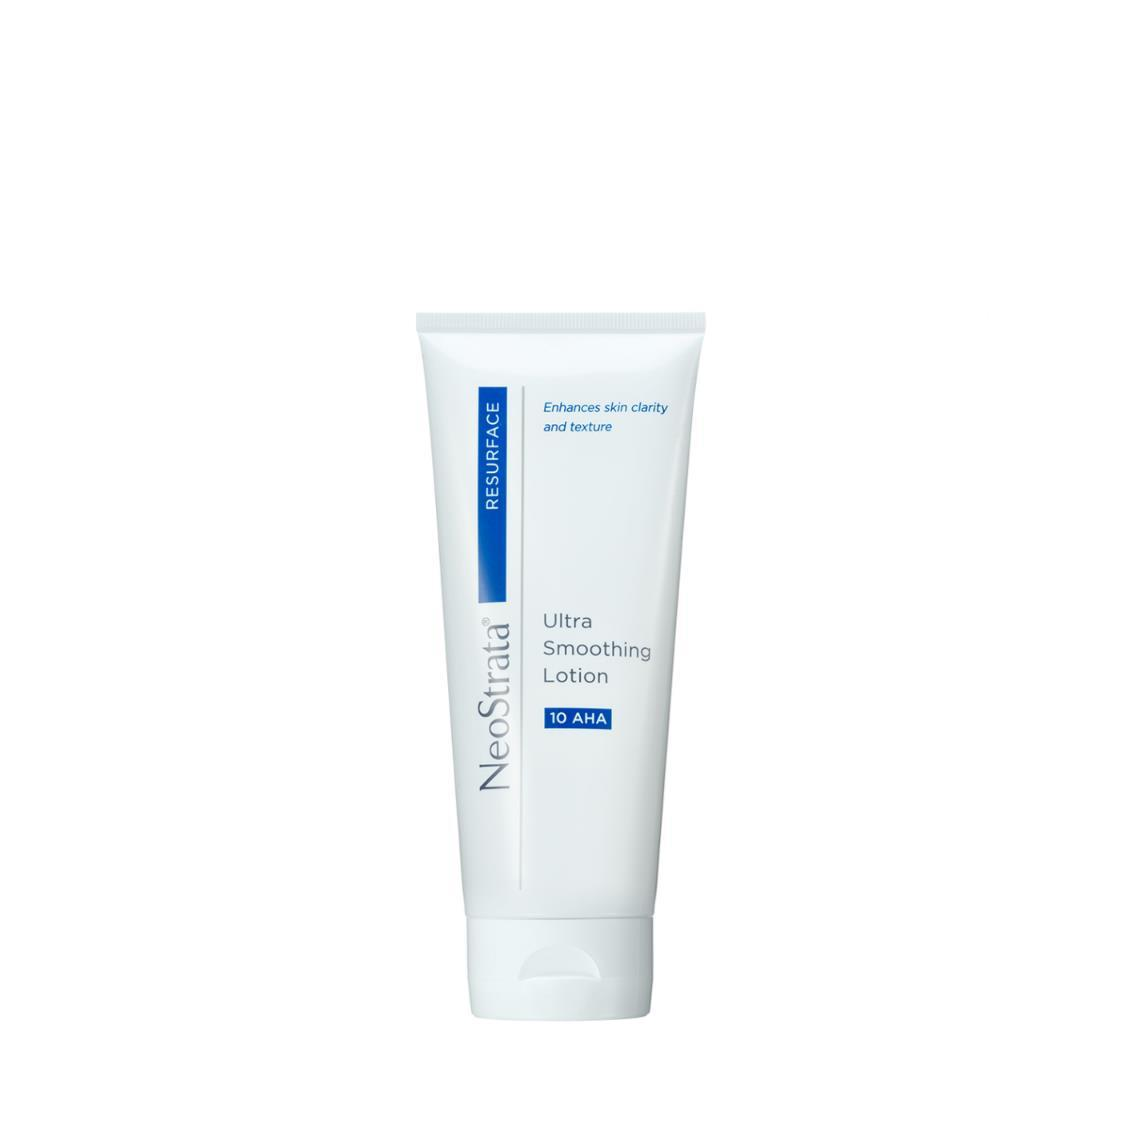 Ultra Smoothing Lotion 200g